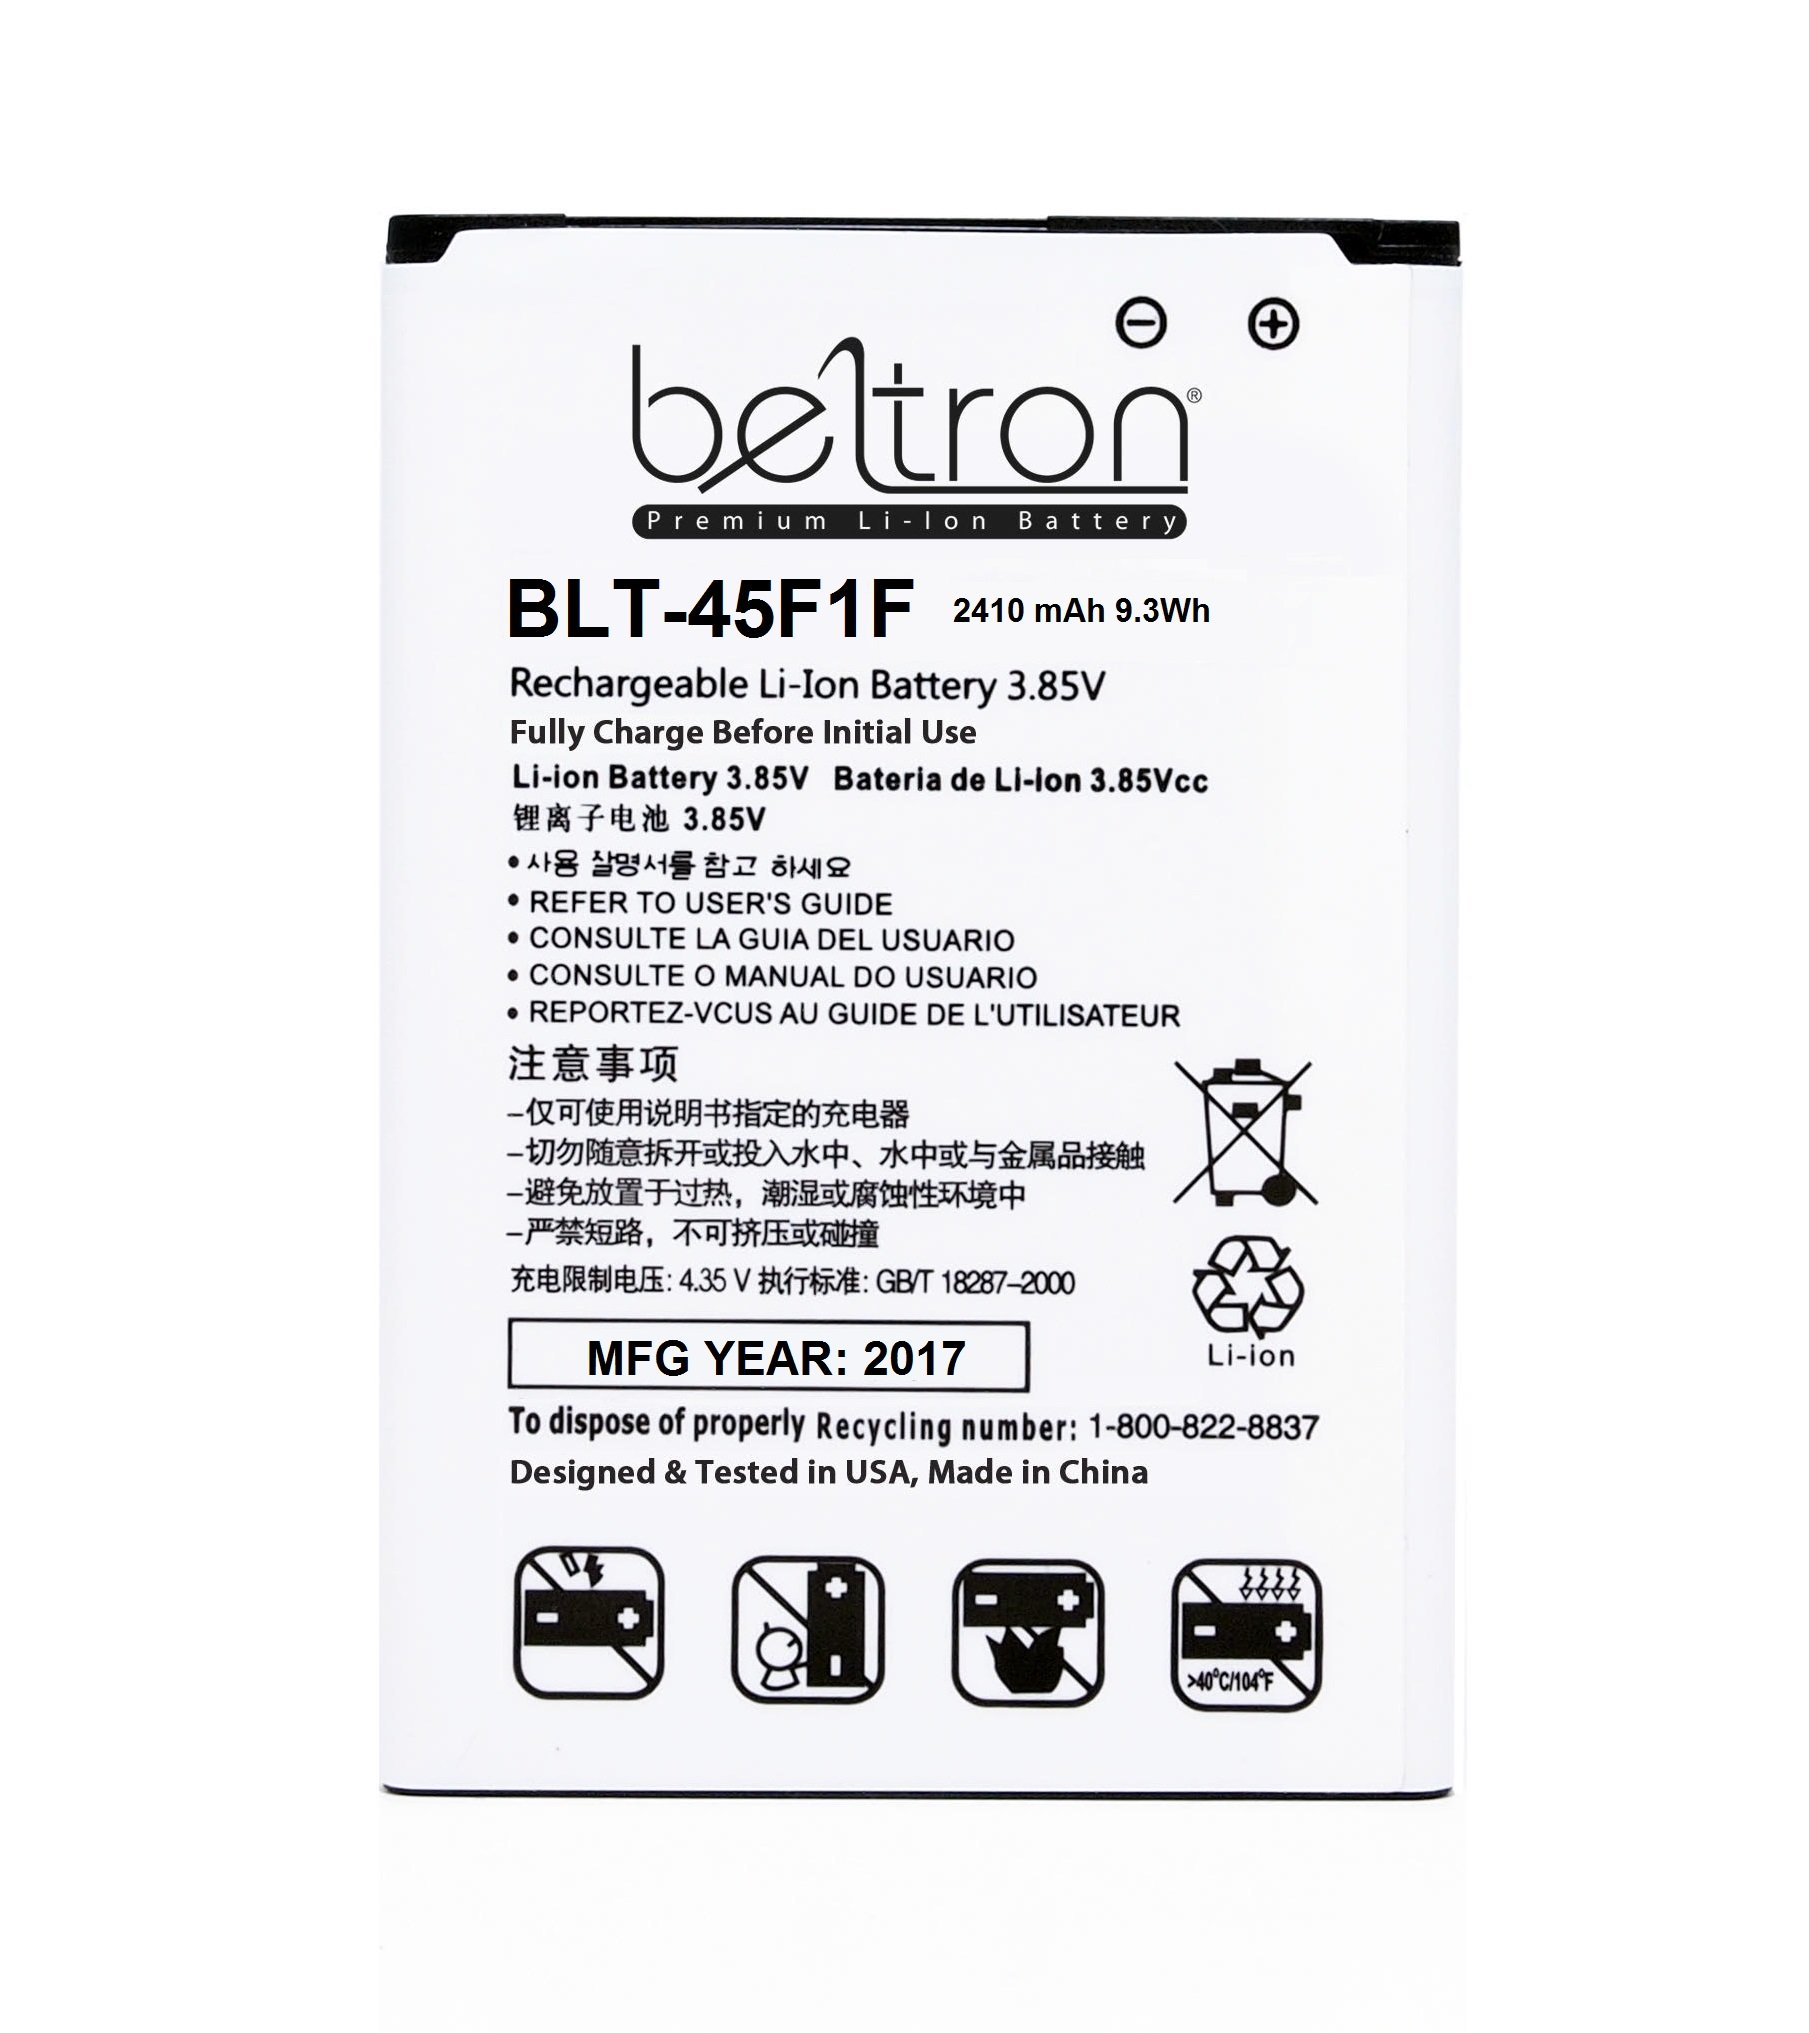 New 2410 mAh BELTRON Replacement Battery for LG LV3 / Aristo MS210 (Metro PCS & T-Mobile) BL-45F1F by BELTRON